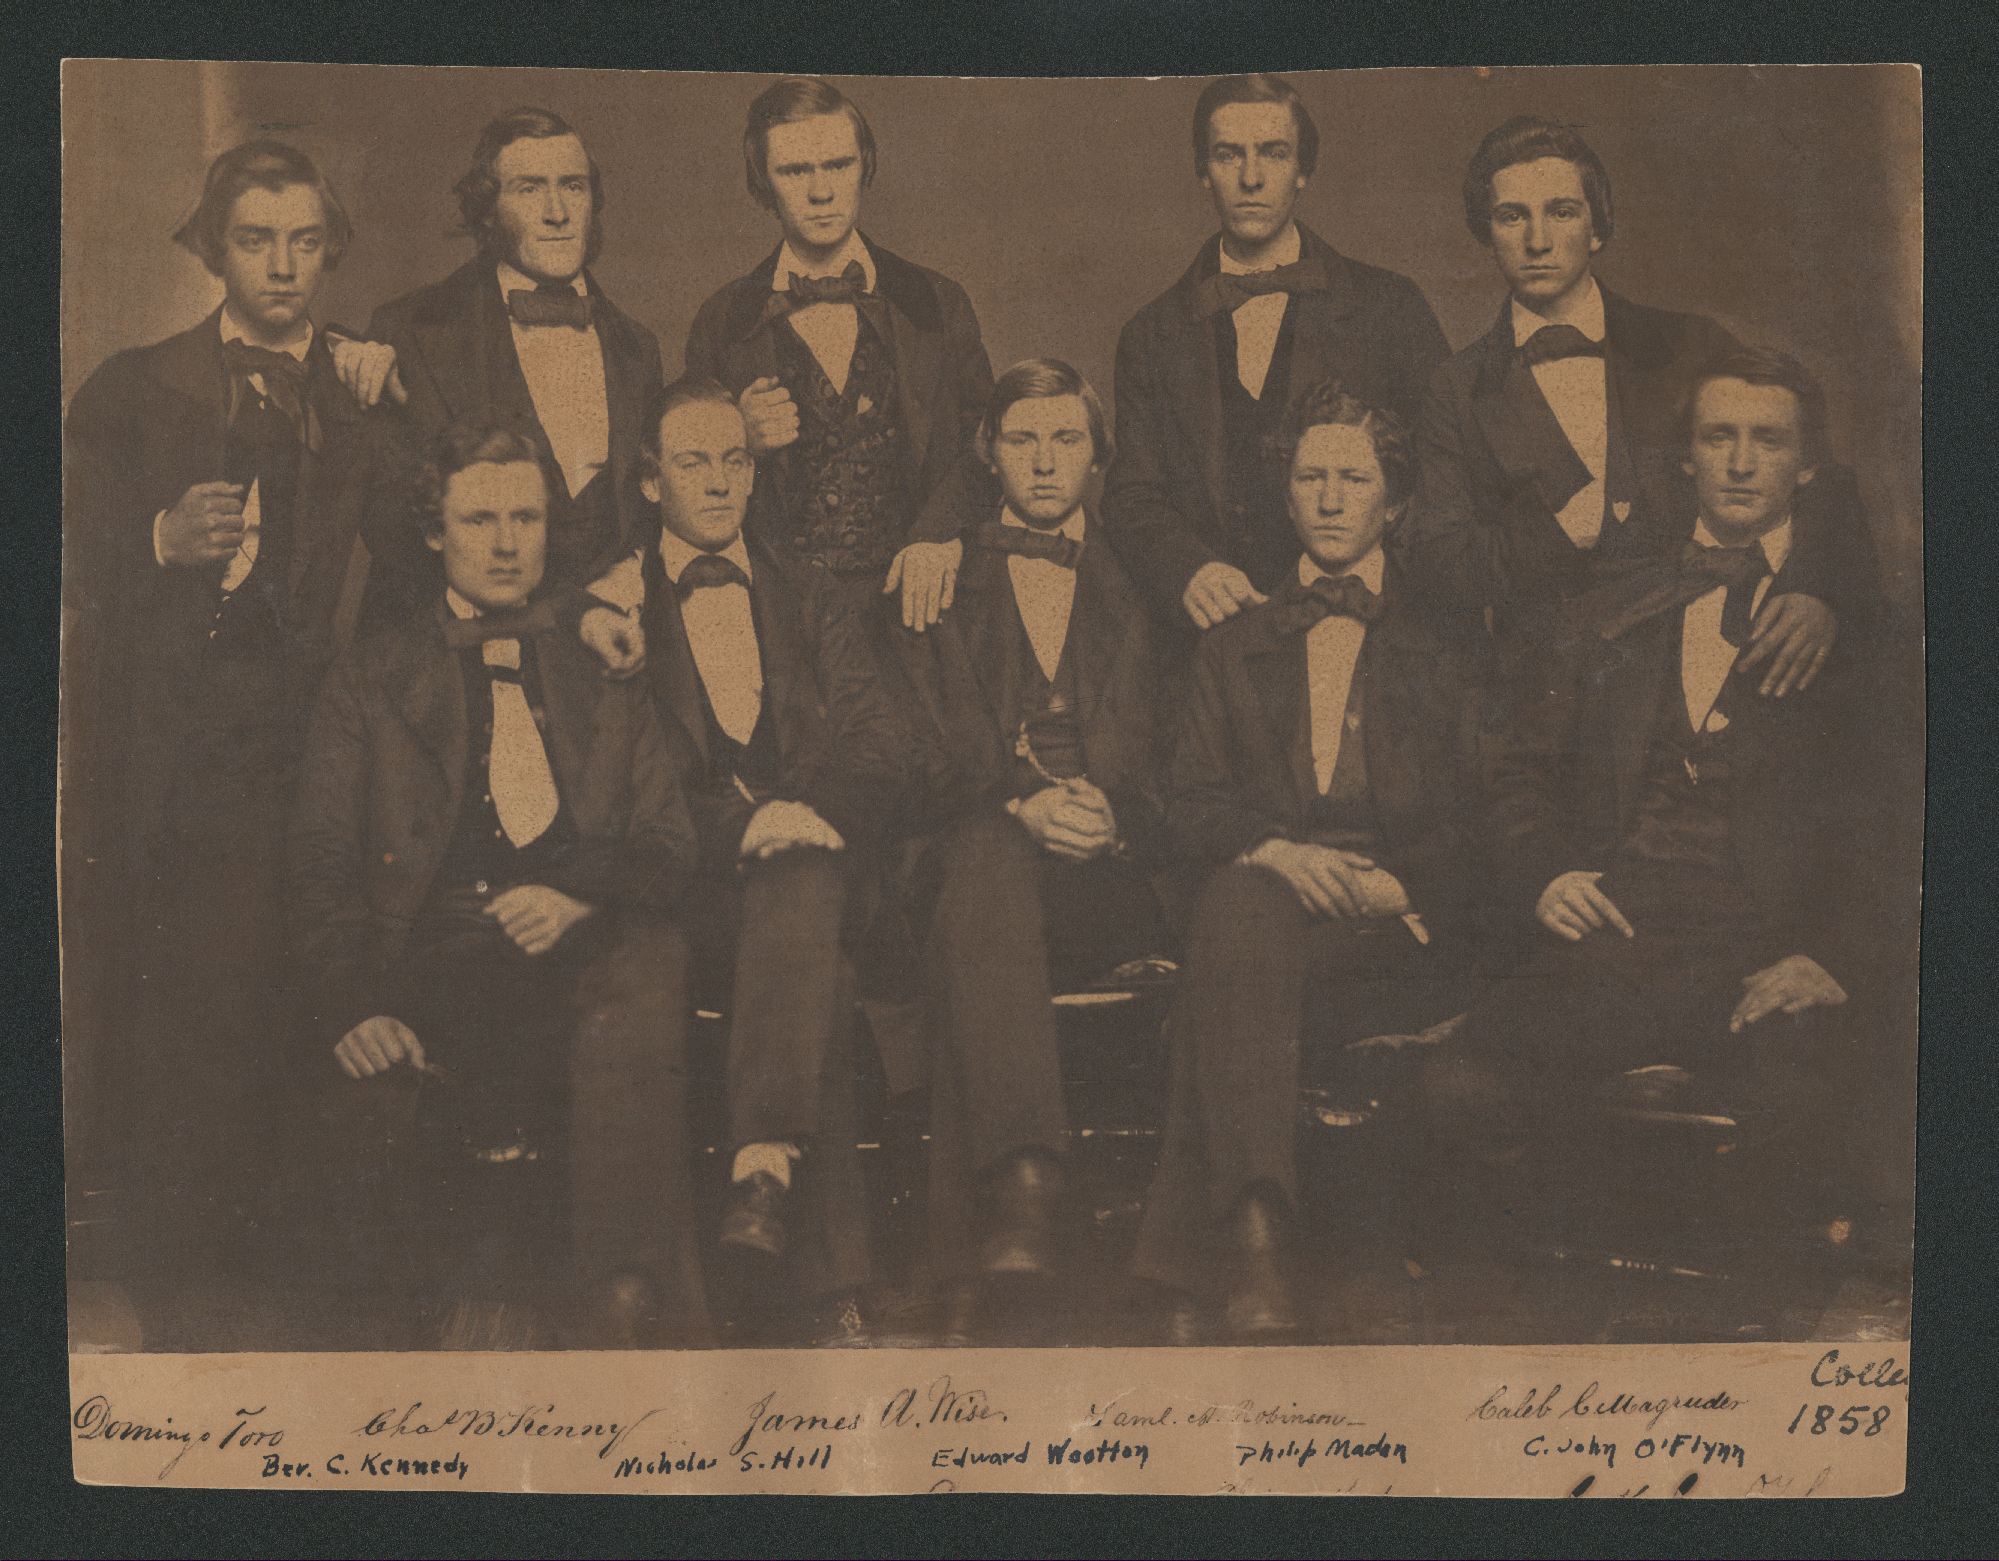 Sepia toned image of graduates wearing suits